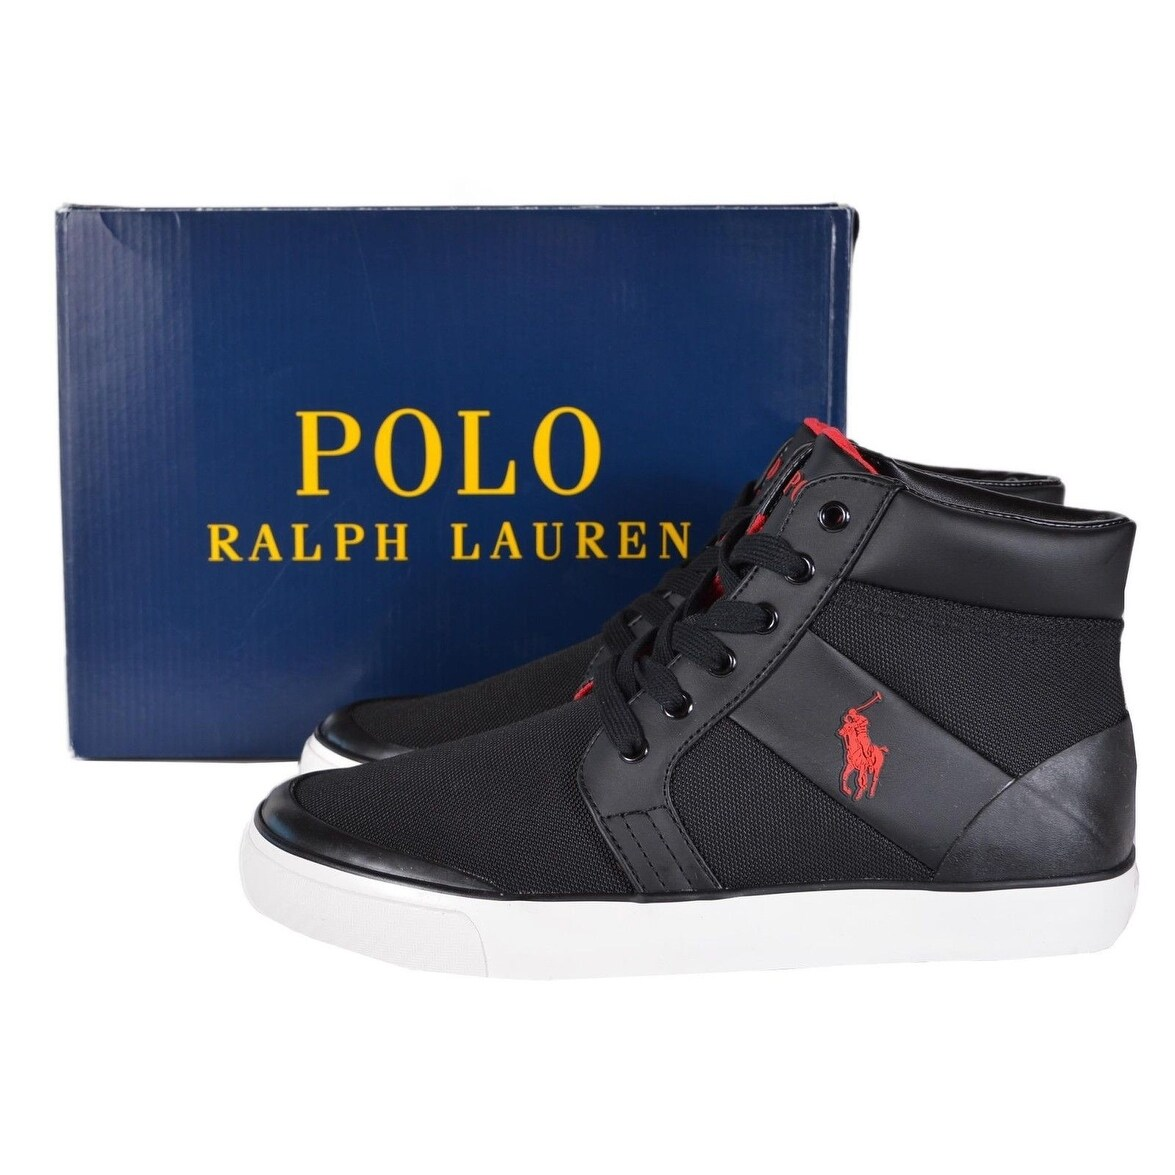 Lauren Mesh Top Ralph Shoes 5 Men's Polo Black High Sneakers 8 Isaak PTwkiOXZu